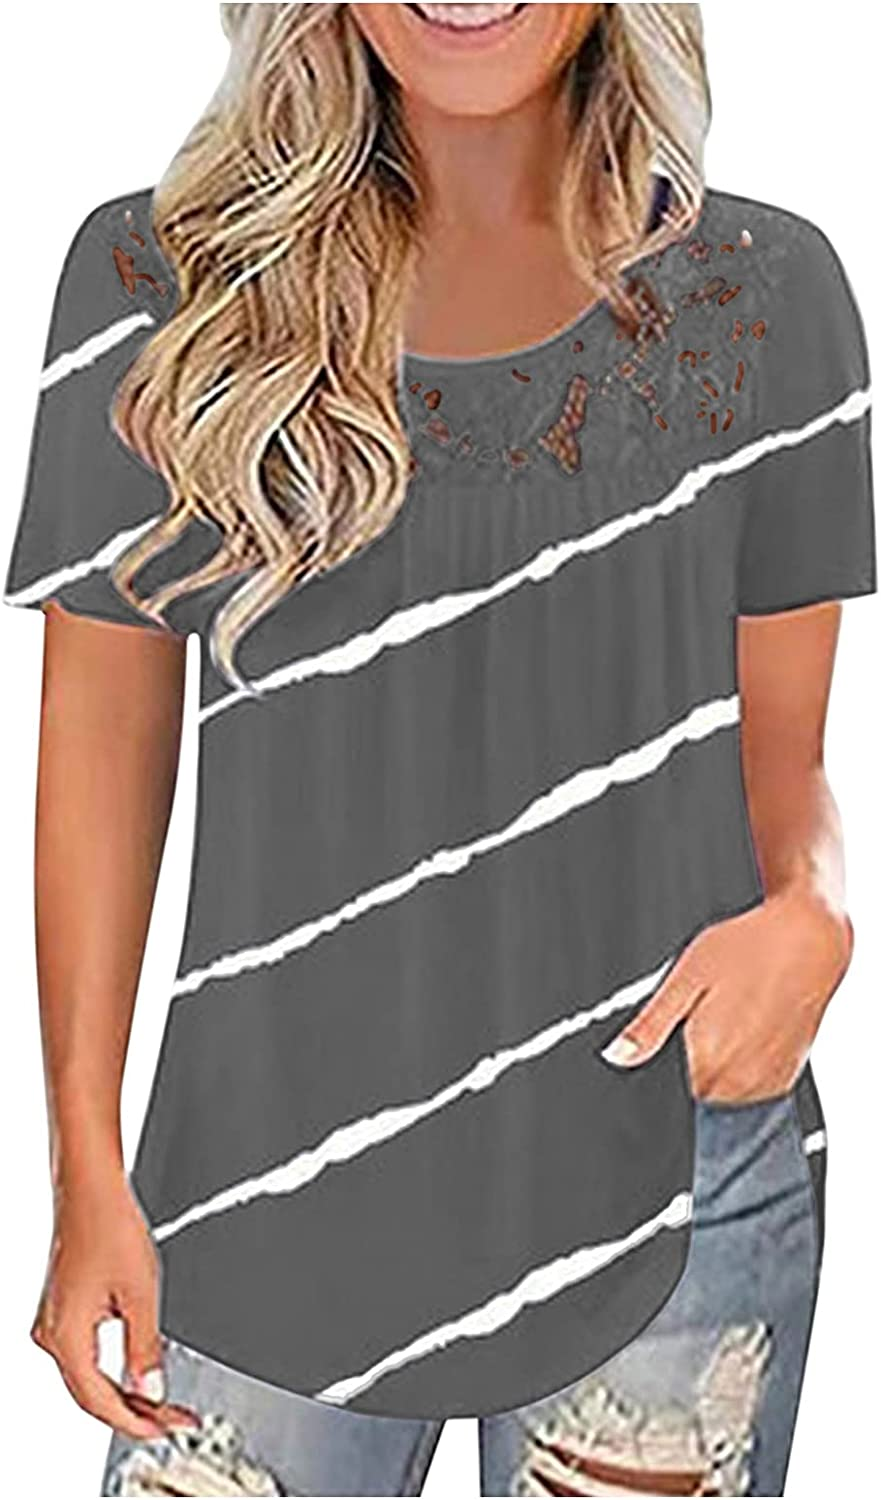 AODONG Short Sleeve Tops for Women, Women's Summer Tops Plus Size Lace Pleated Shirts Casual Loose Tunic Tops Blouses